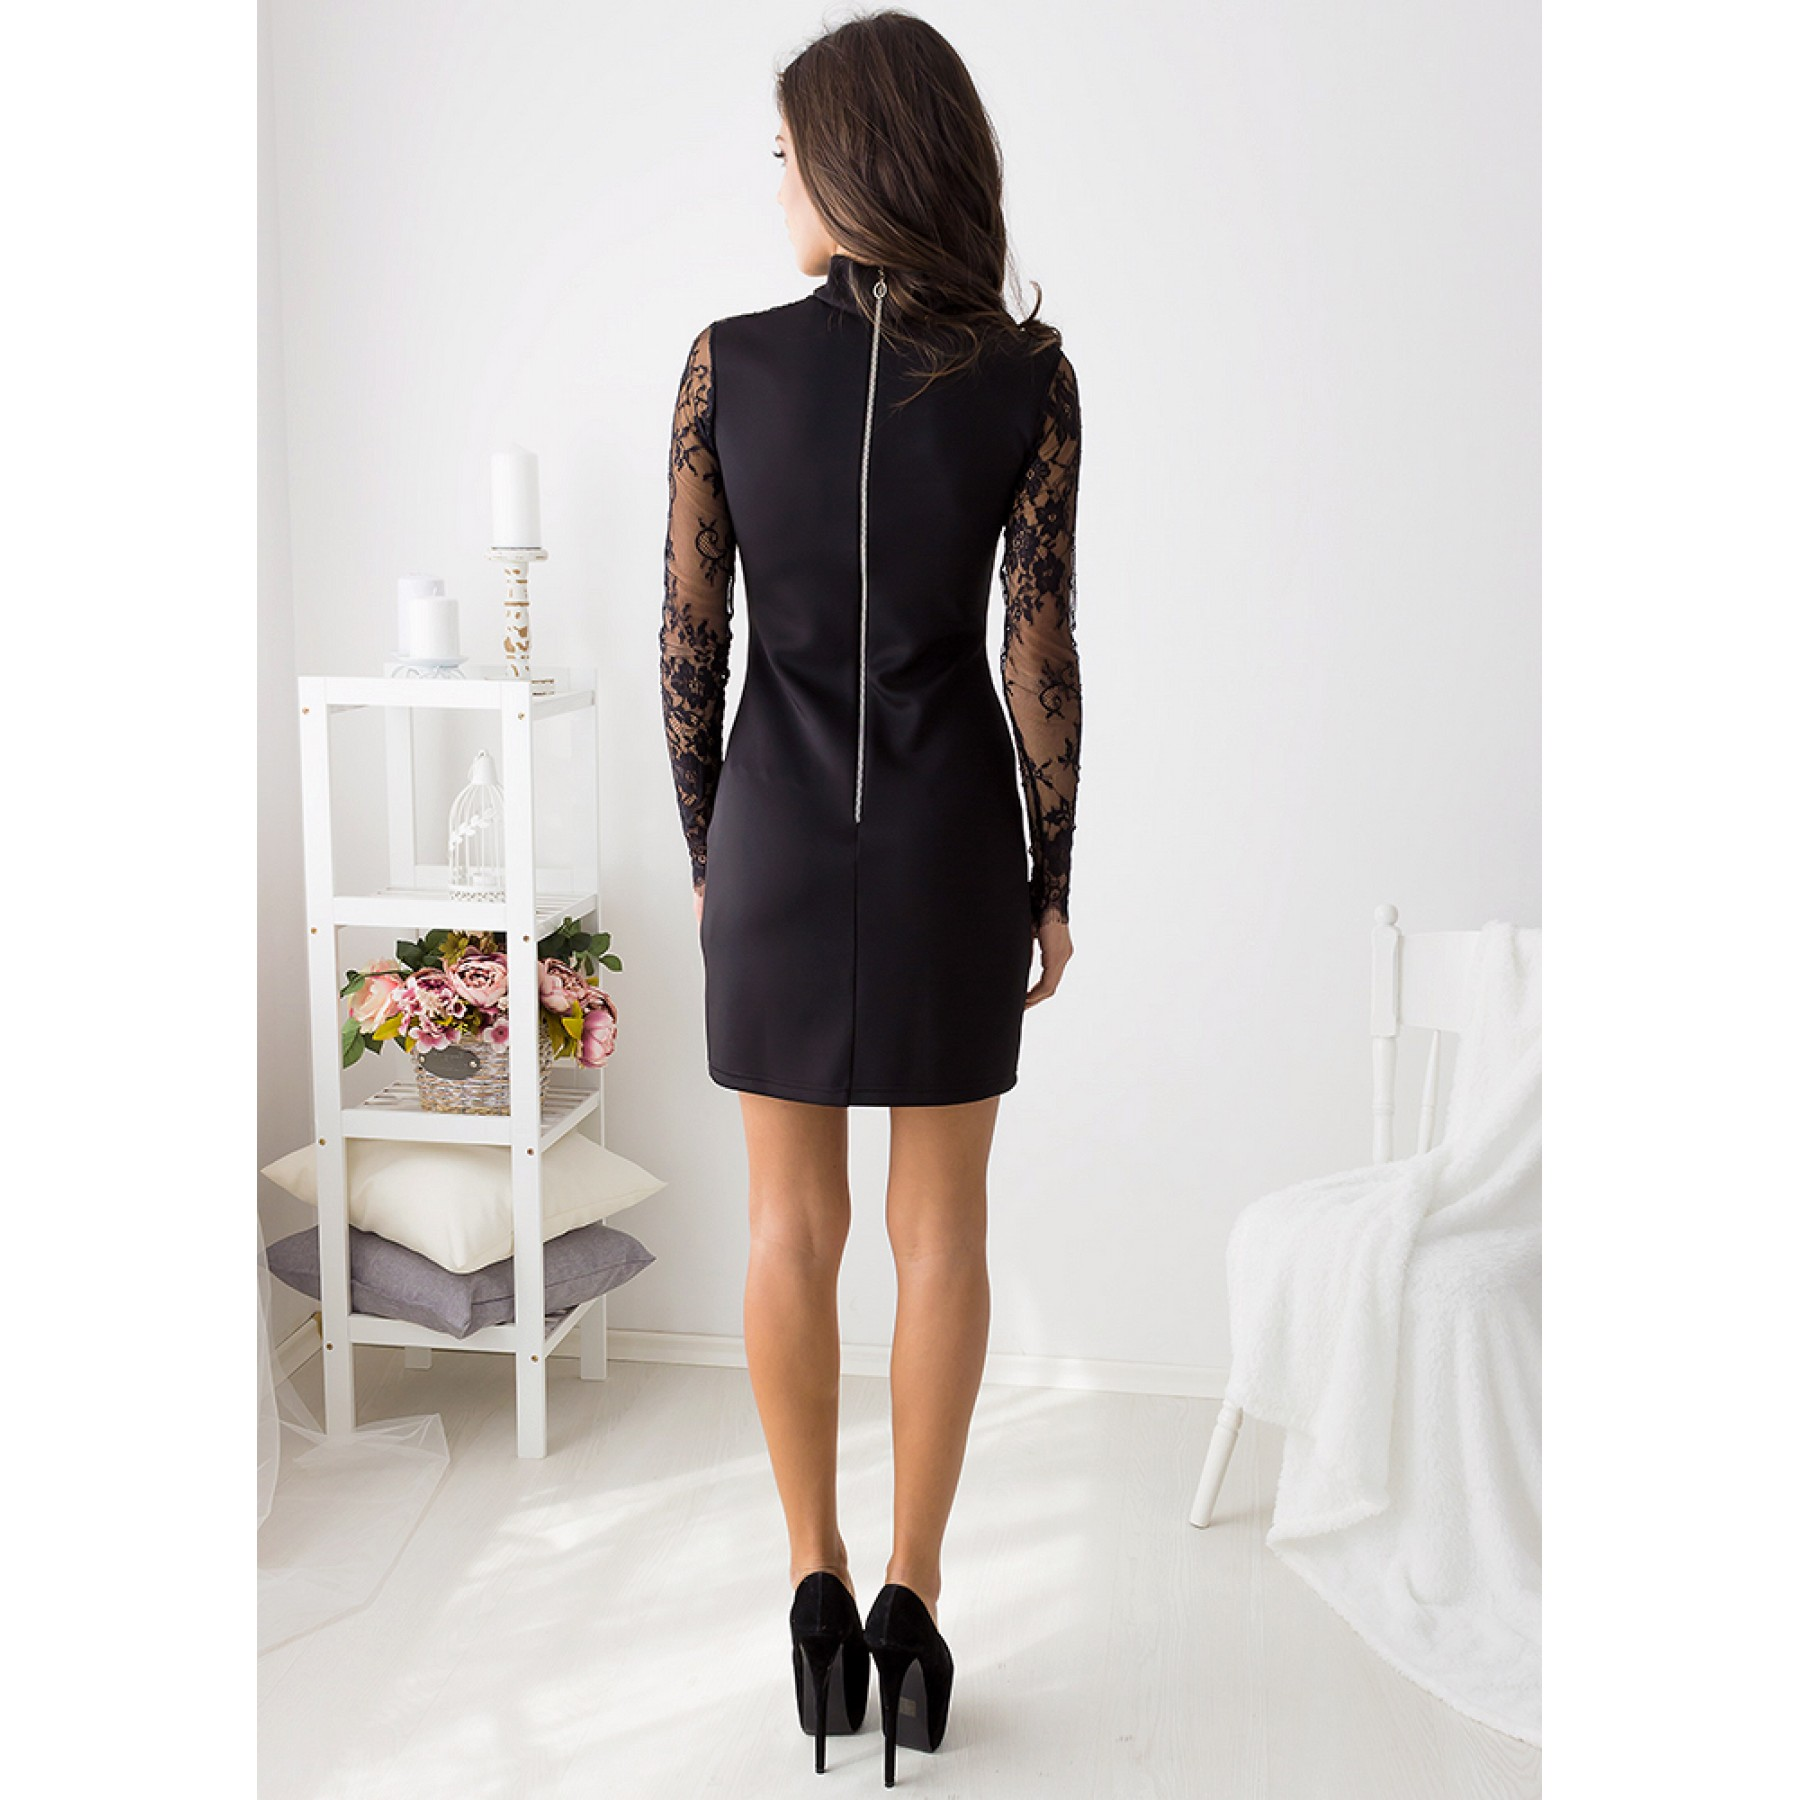 Break My Heart Mini Dress (Black)